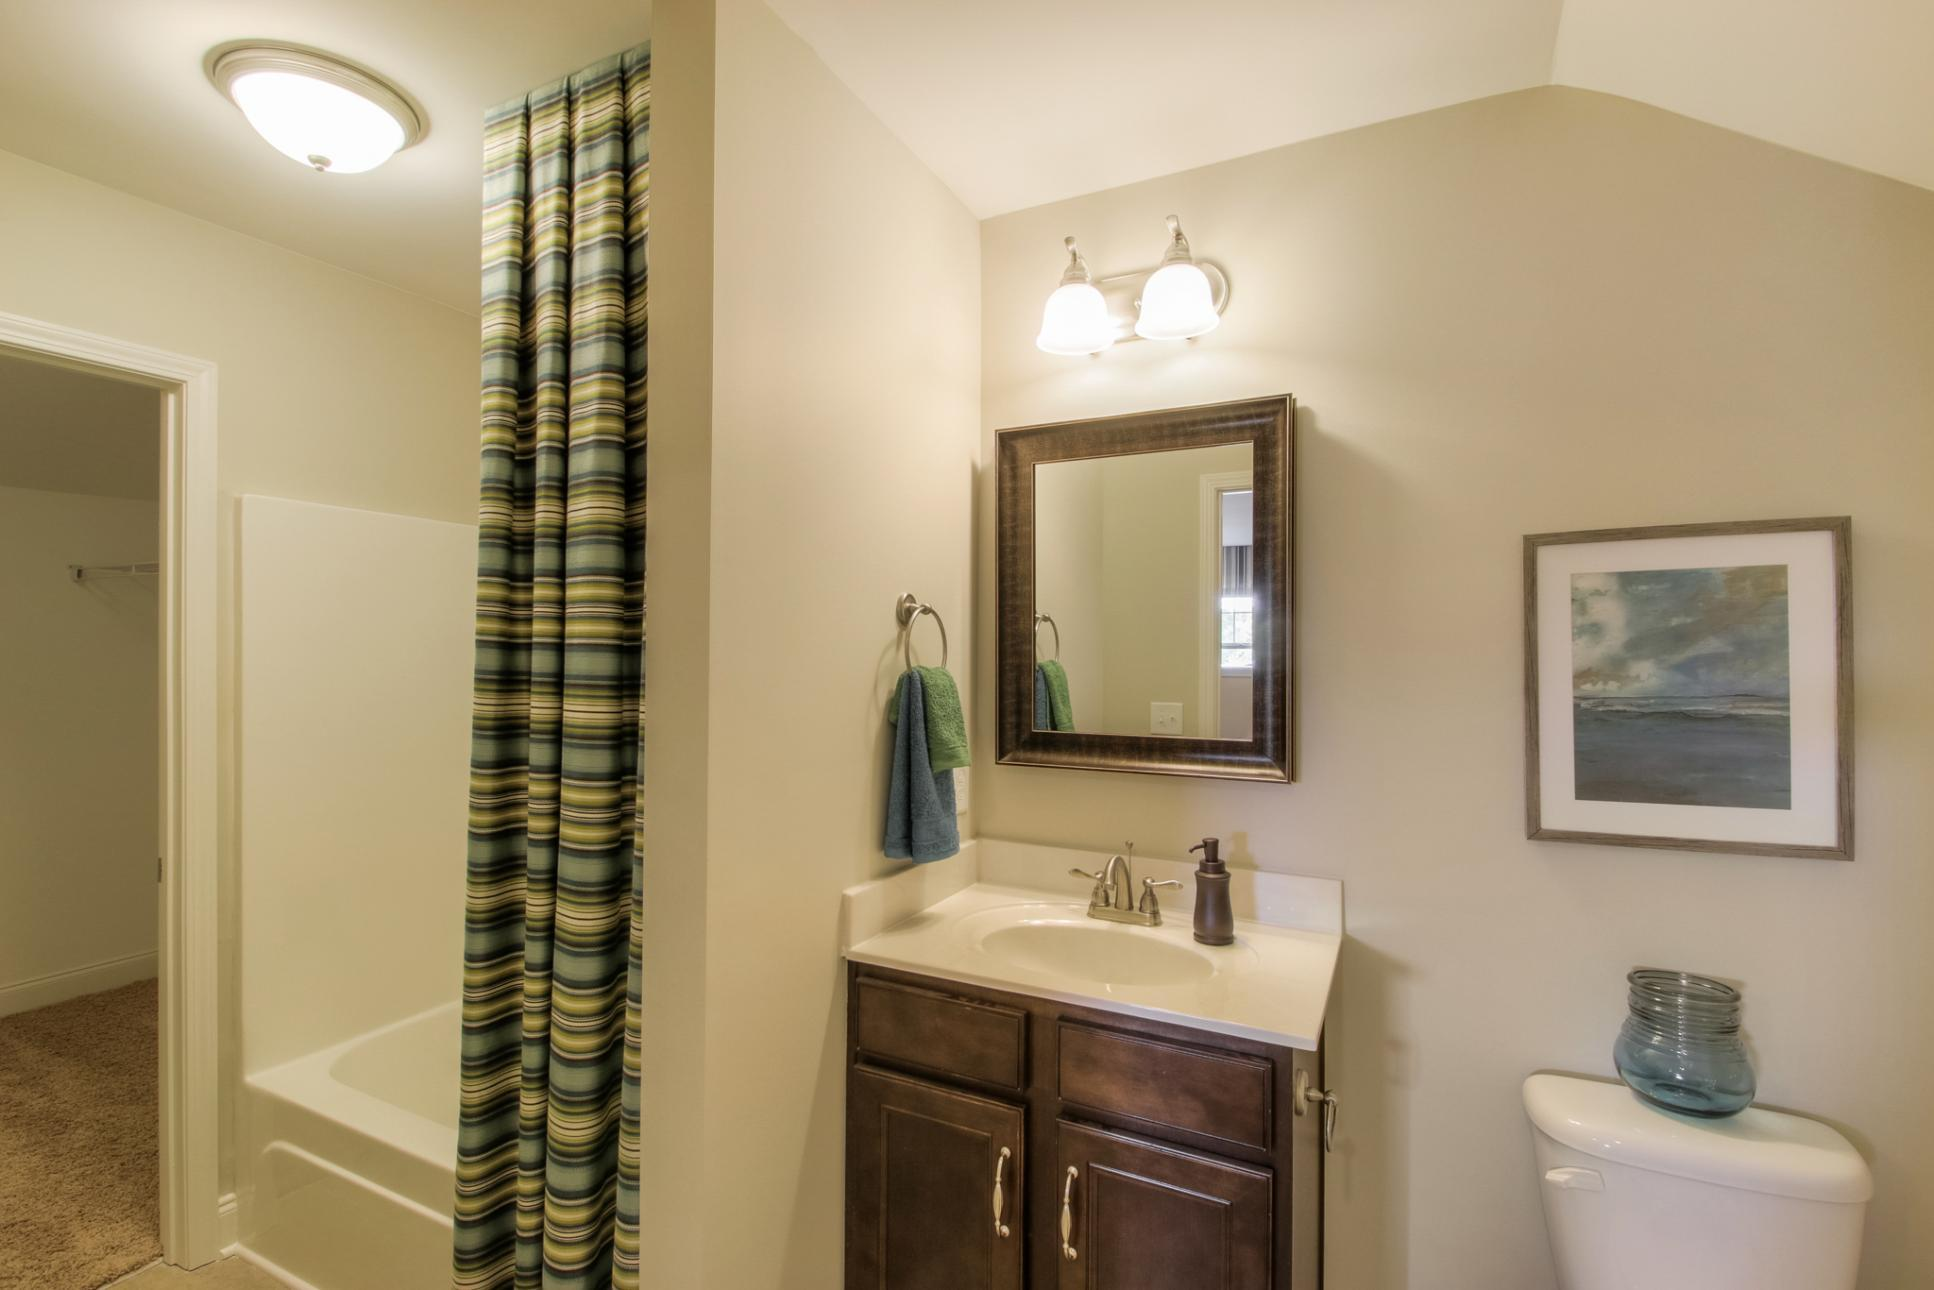 Bathroom featured in The Everleigh Courtyard Cottage By Goodall Homes in Nashville, TN